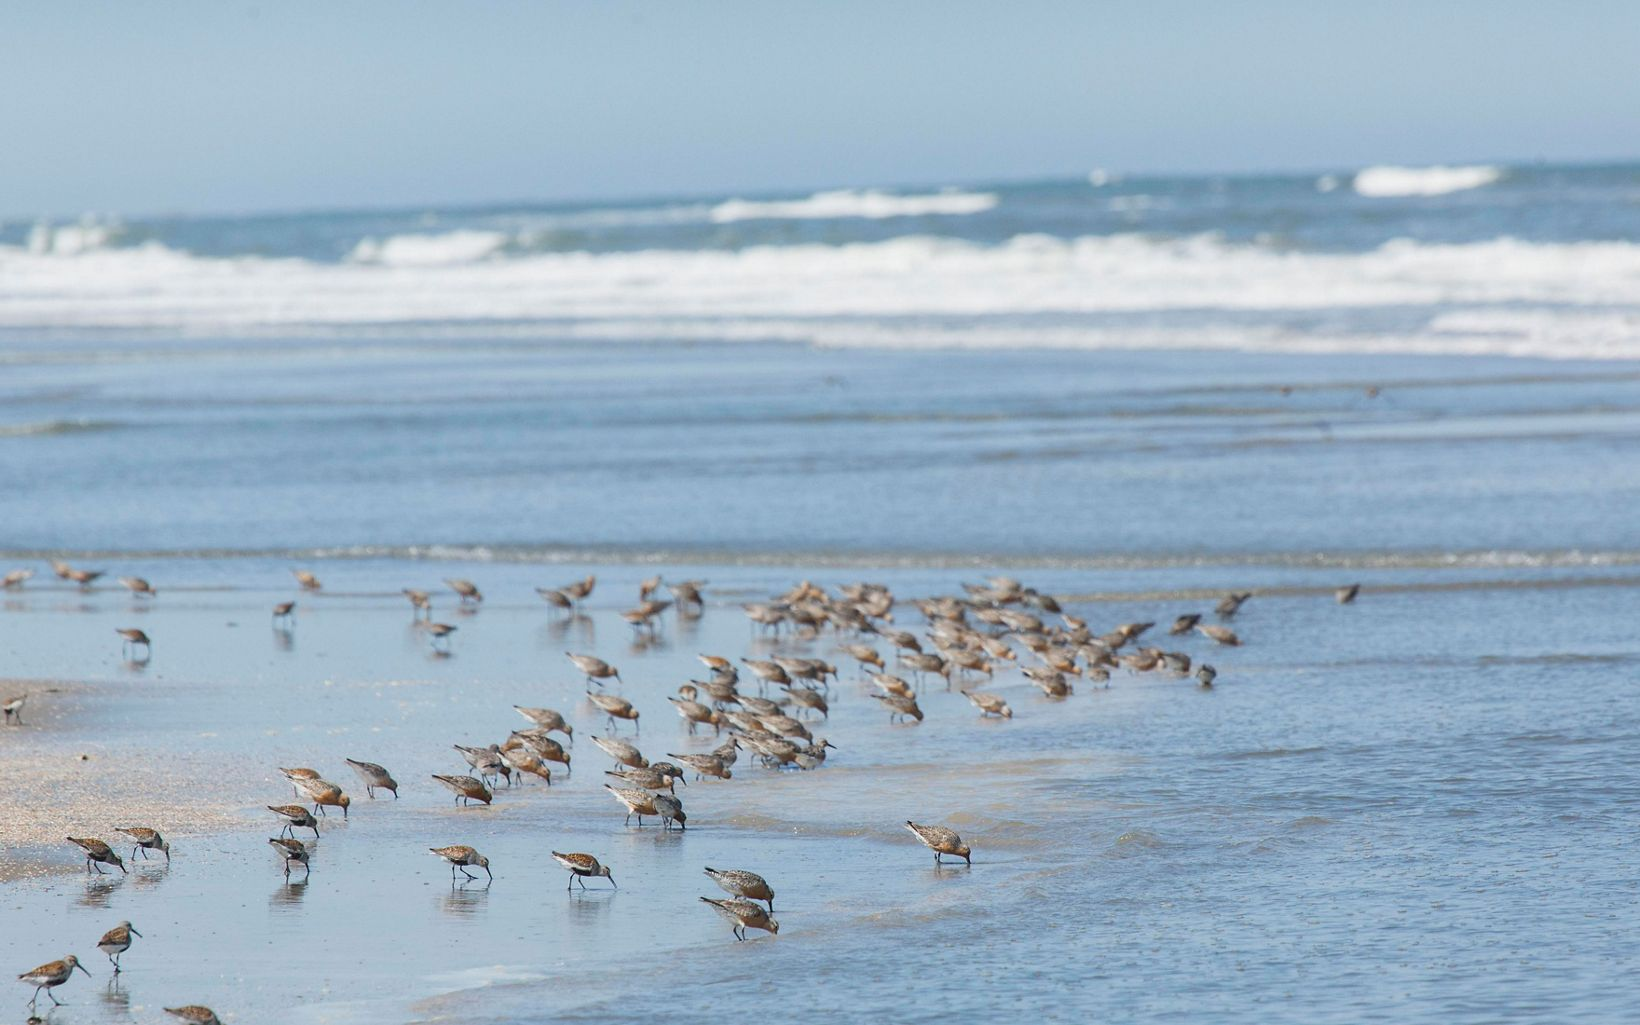 a flock of shorebirds on the beach